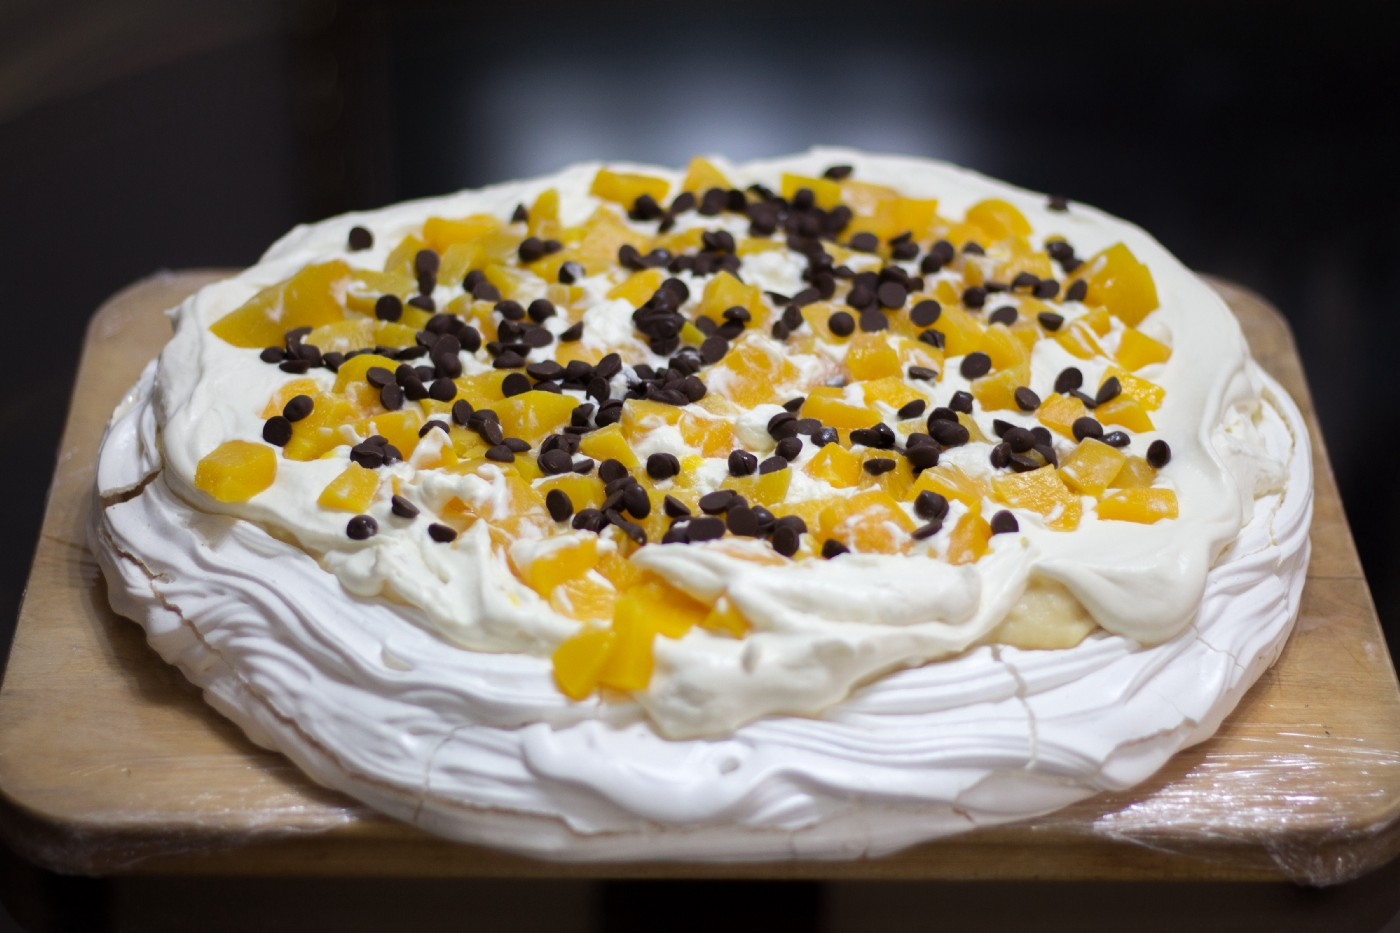 A delicious dessert of meringue topped with whipped cream and fruit. (This one has chocolate too —a step too far!)